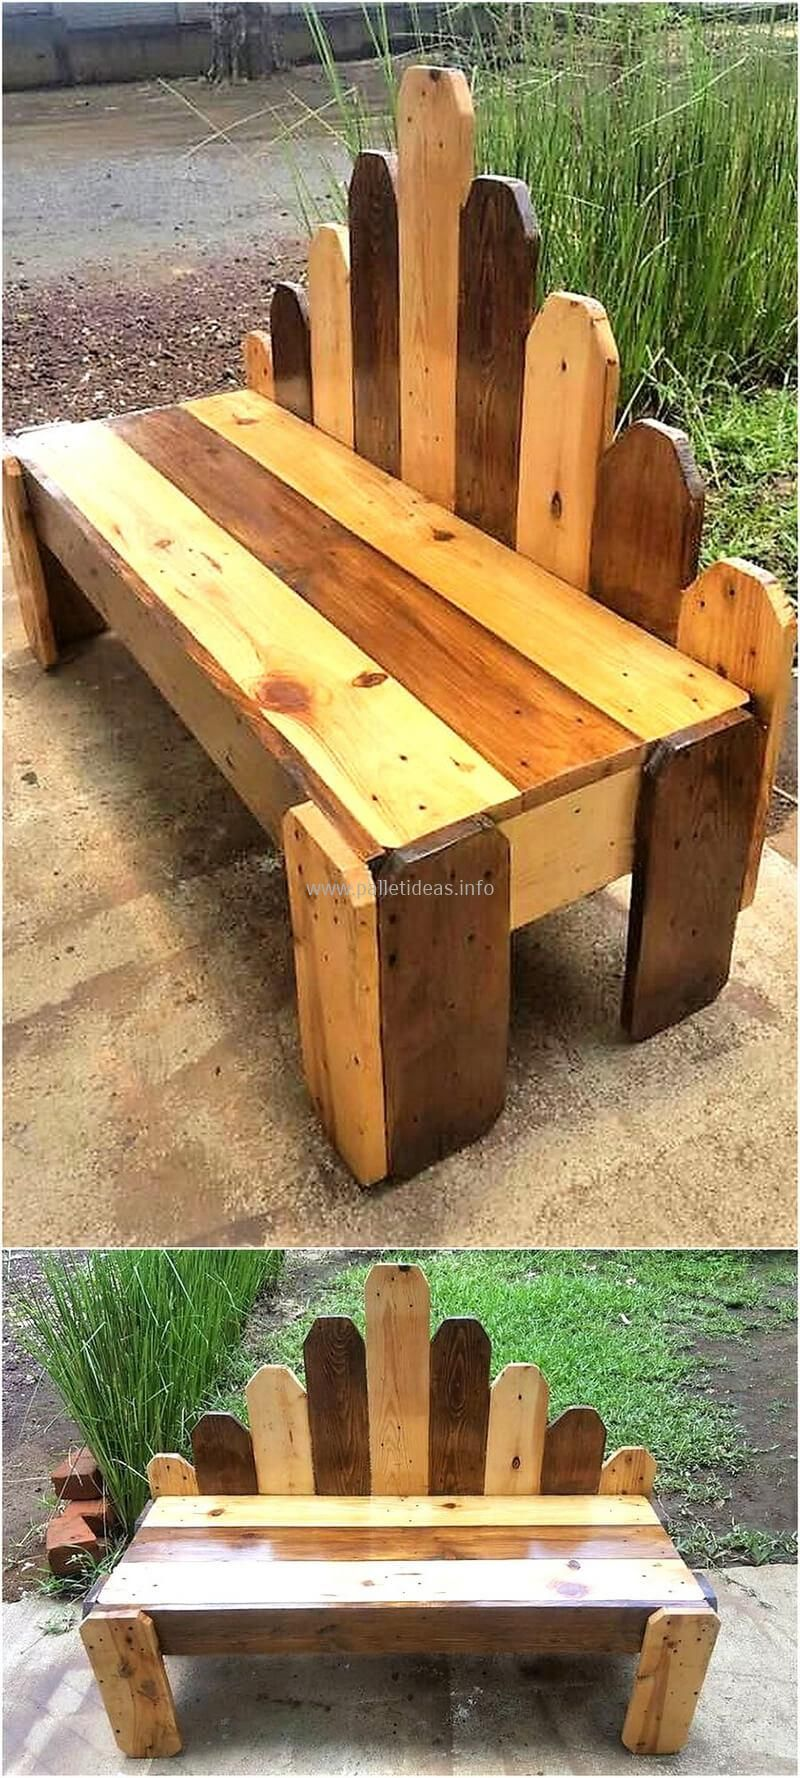 Garden Bench From Pallets DIY Ideas Garden Furniture Made From Old ...